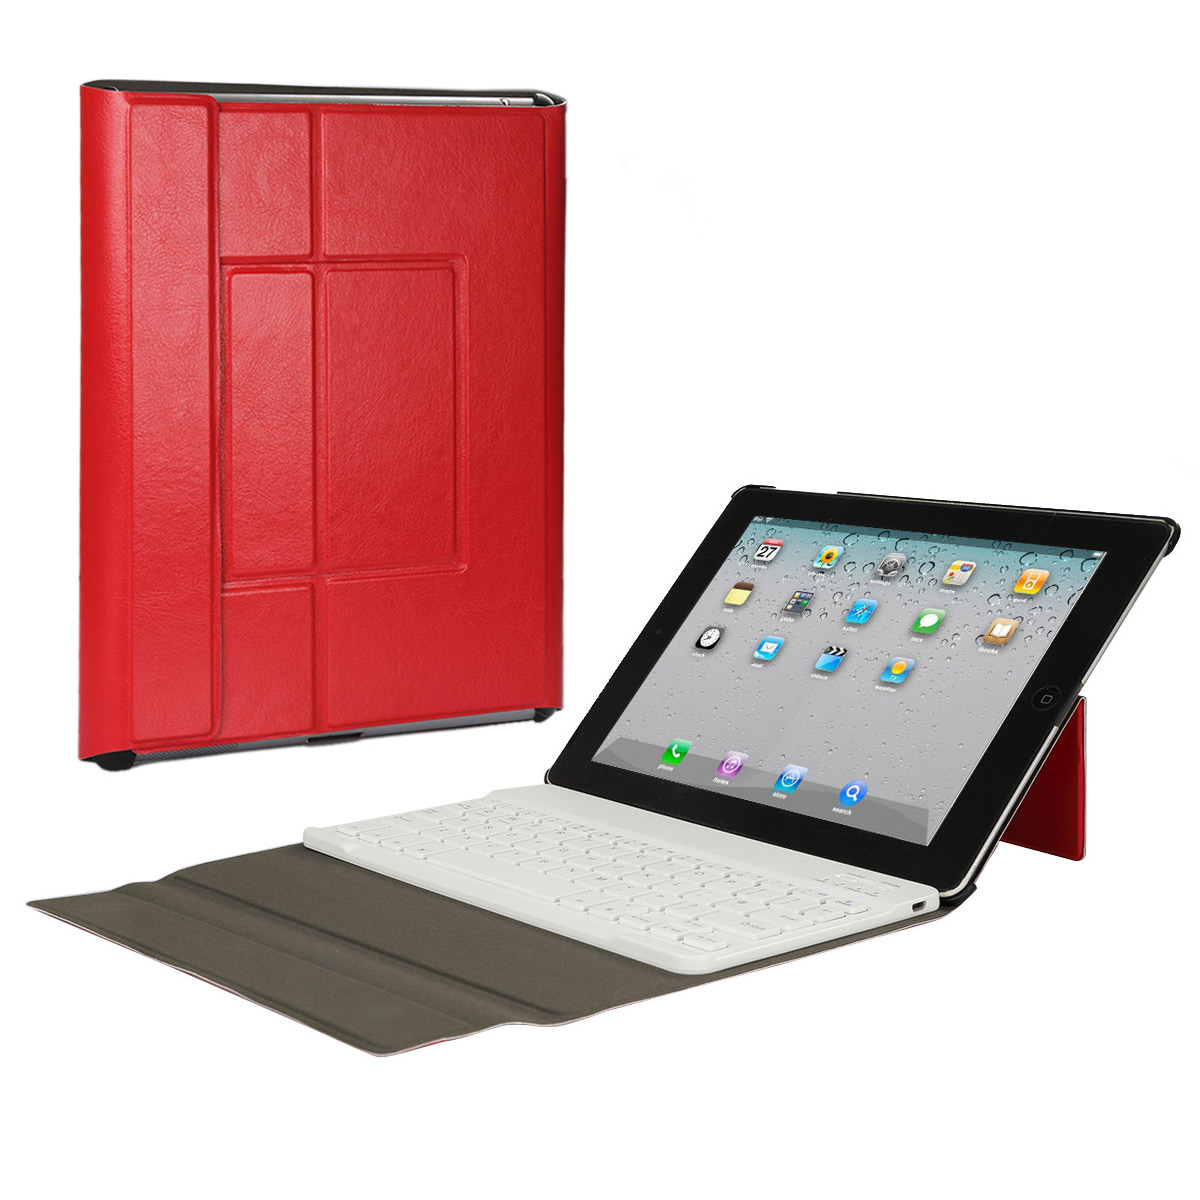 iPad 2/3/4 Bluetooth Keyboard Case, CoastaCloud Bluetooth Ultra Slim Removable Smart Shell Stand Cover with Magnetic Detachable Universal Wireless Keyboard for Apple iPad 2 3 4 (Red)